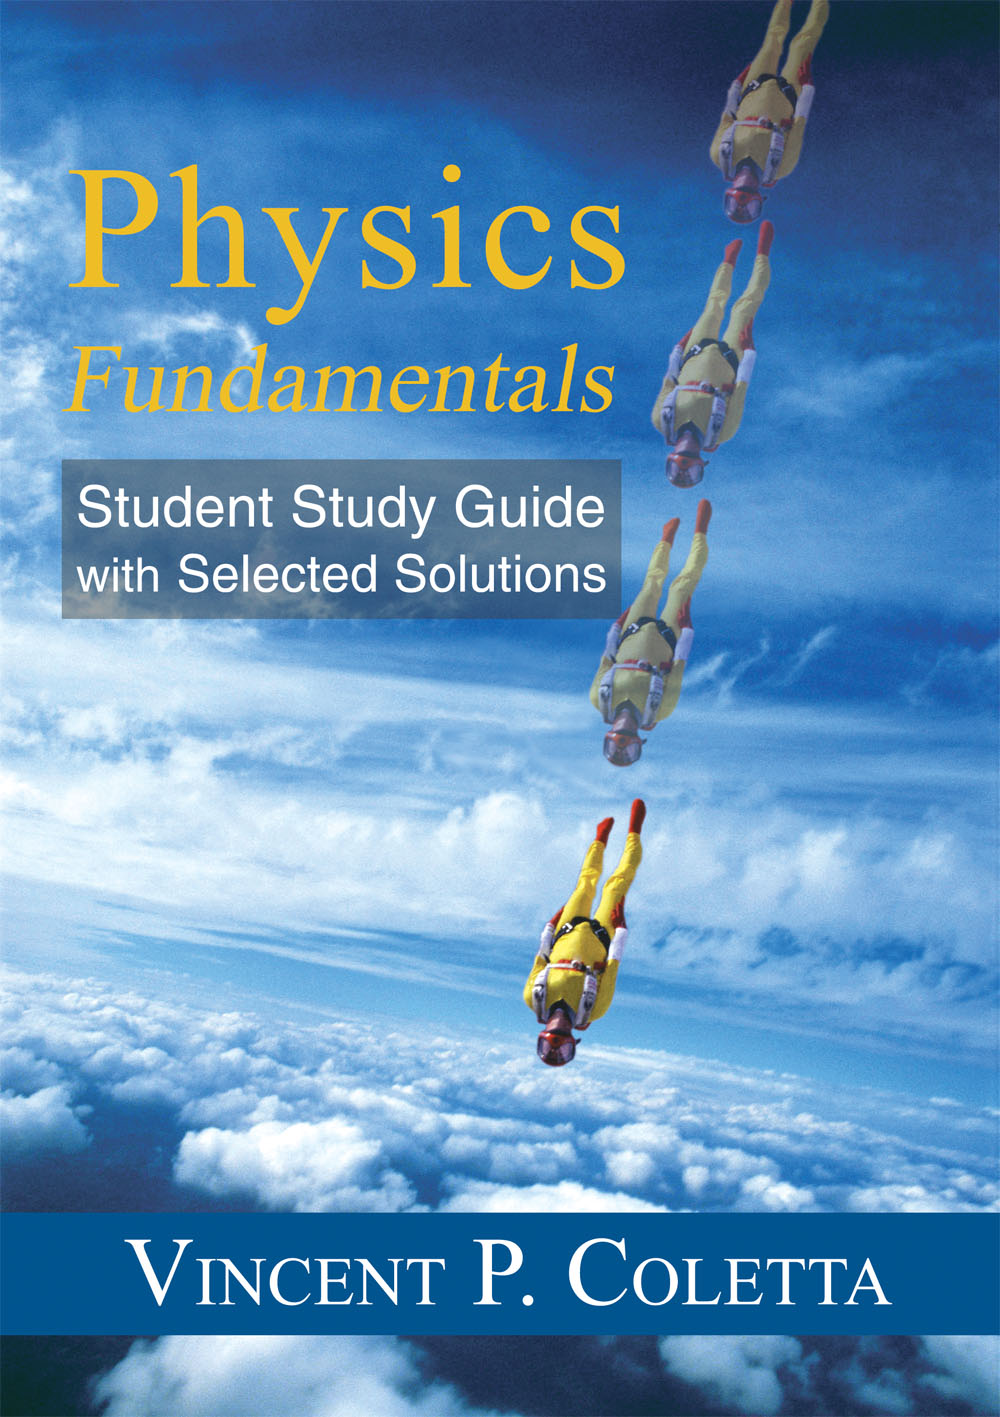 student-study-guide-for-physics-fundamentals.jpg